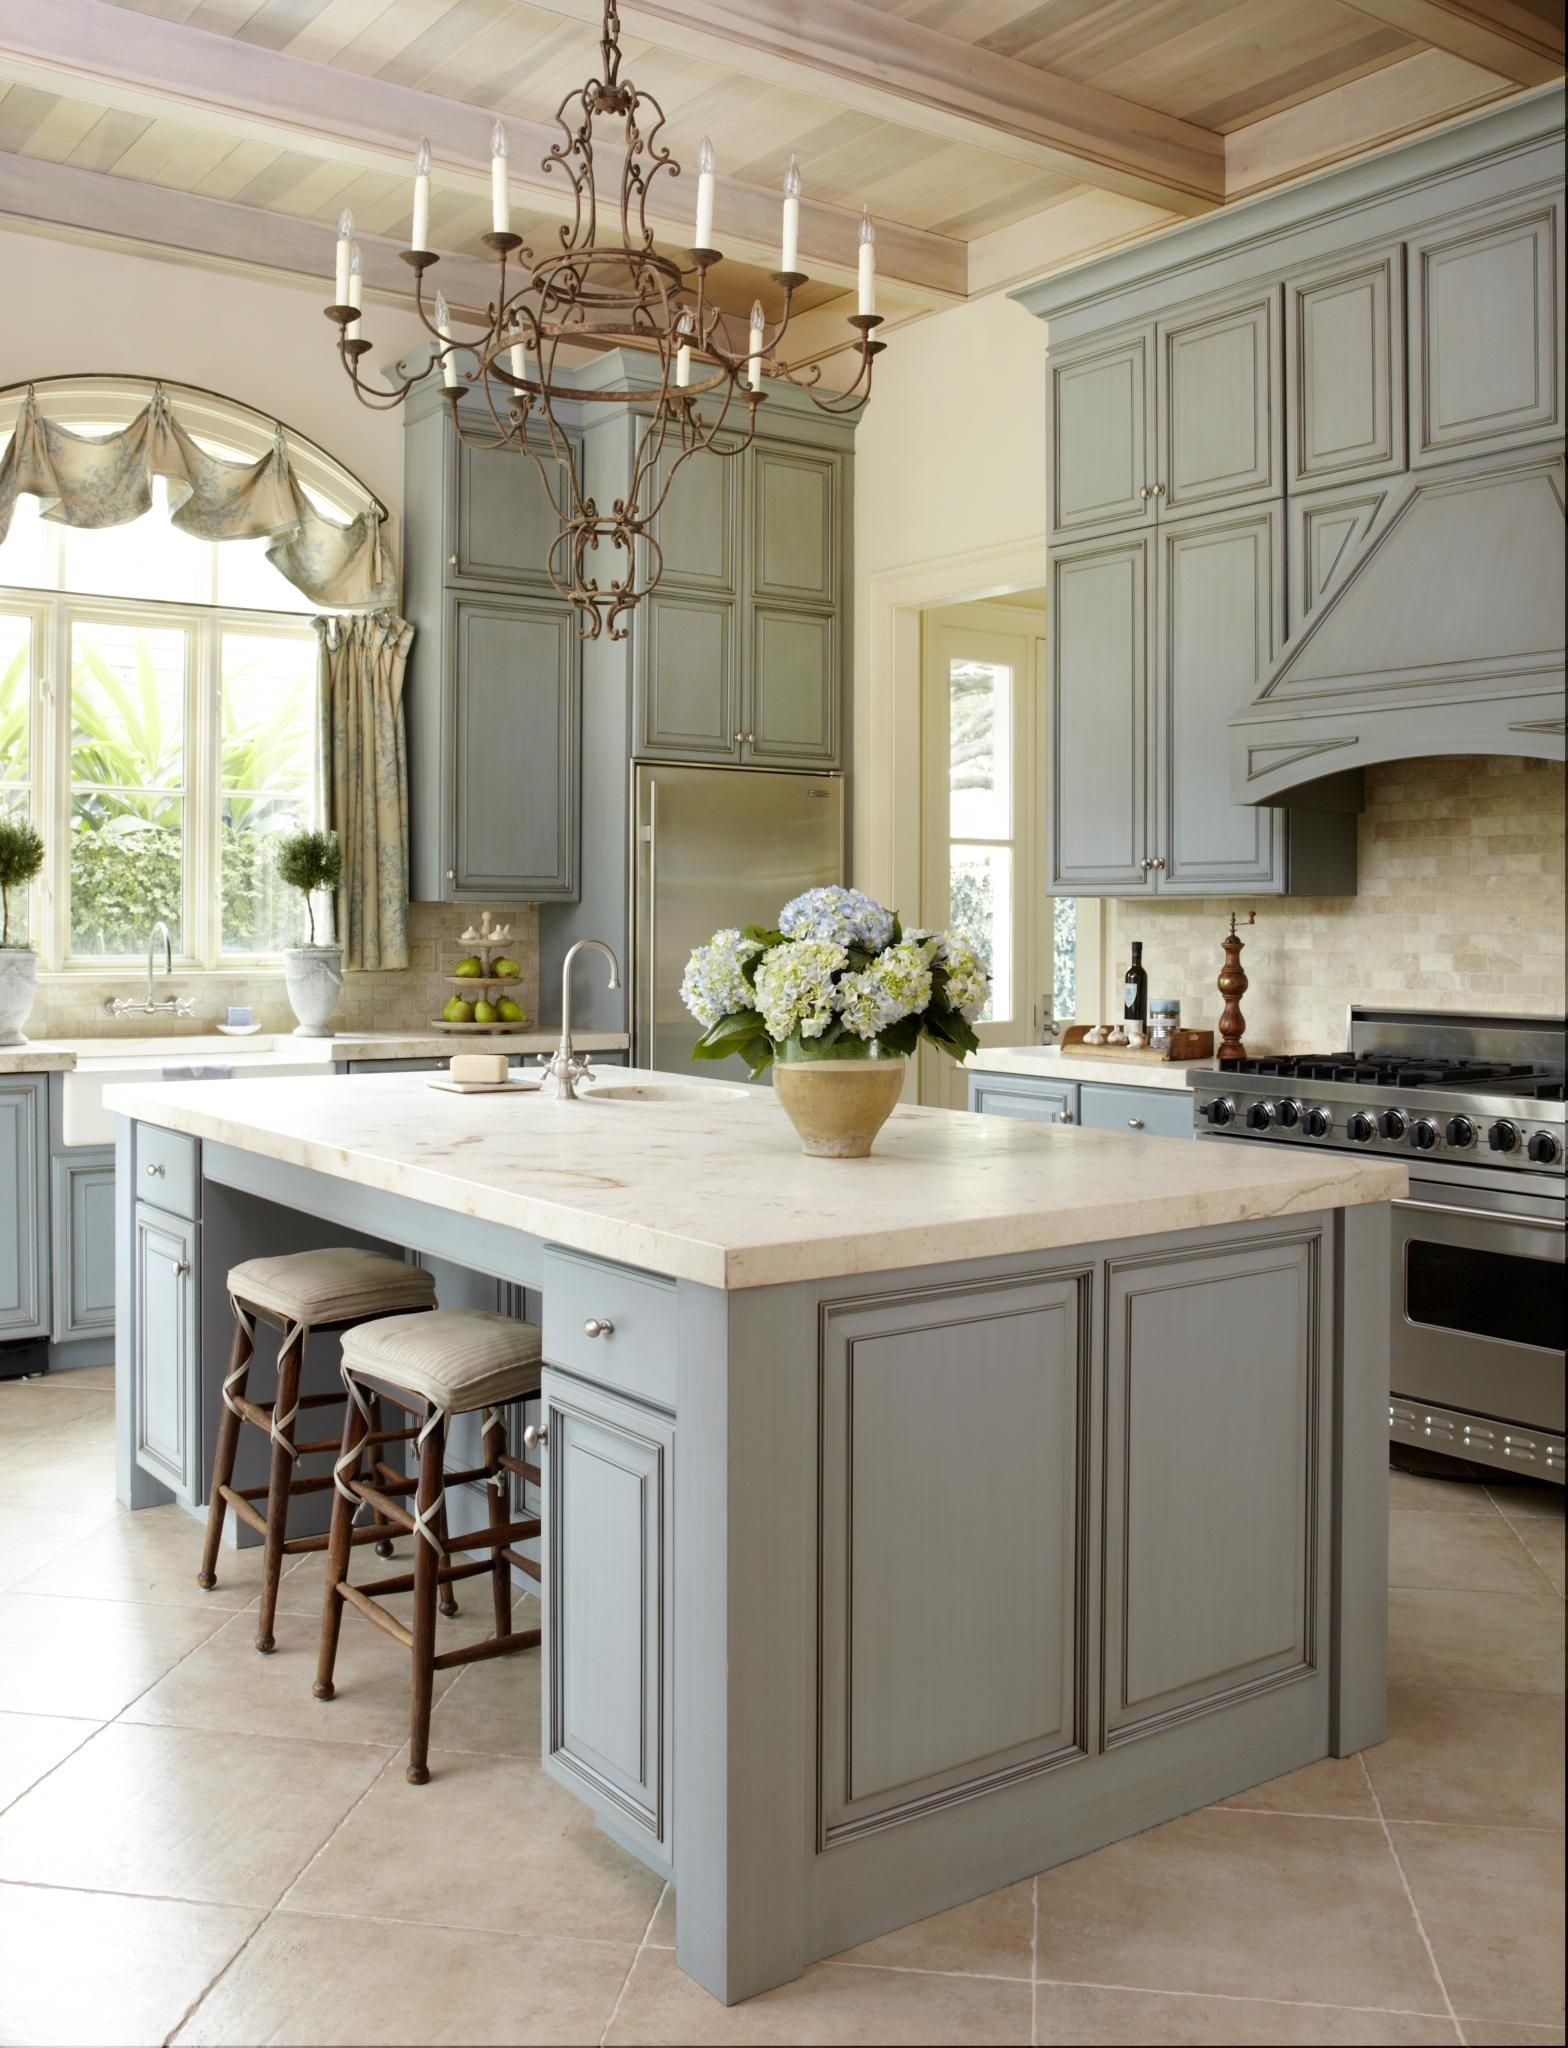 Charming Ideas French Country Decorating Ideas | Kitchen ...